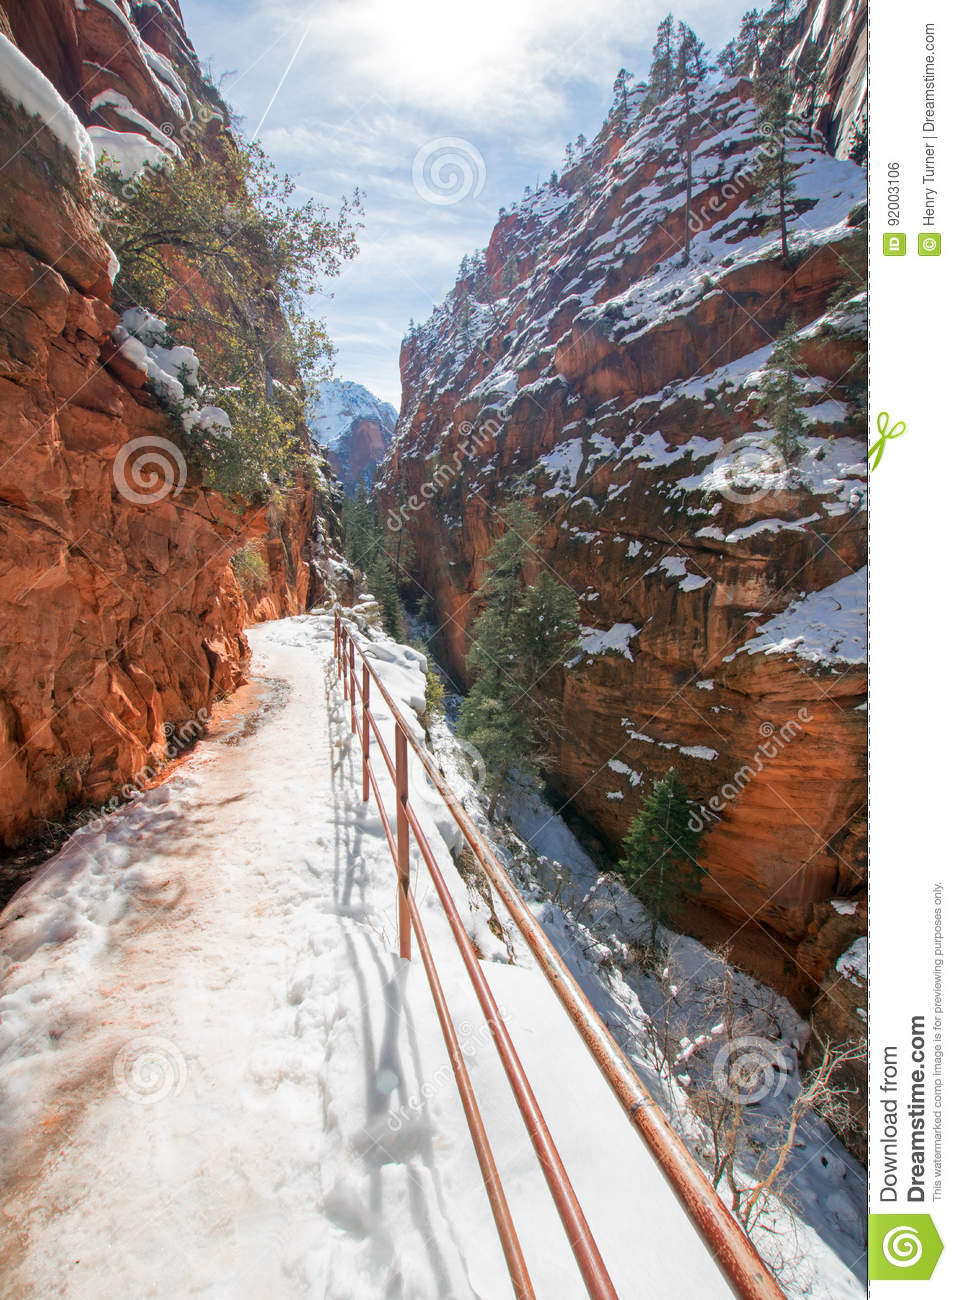 Lodge Clipart Mountain Lodge - Zion National Park Clipart - Png Download  (#5453711) - PikPng